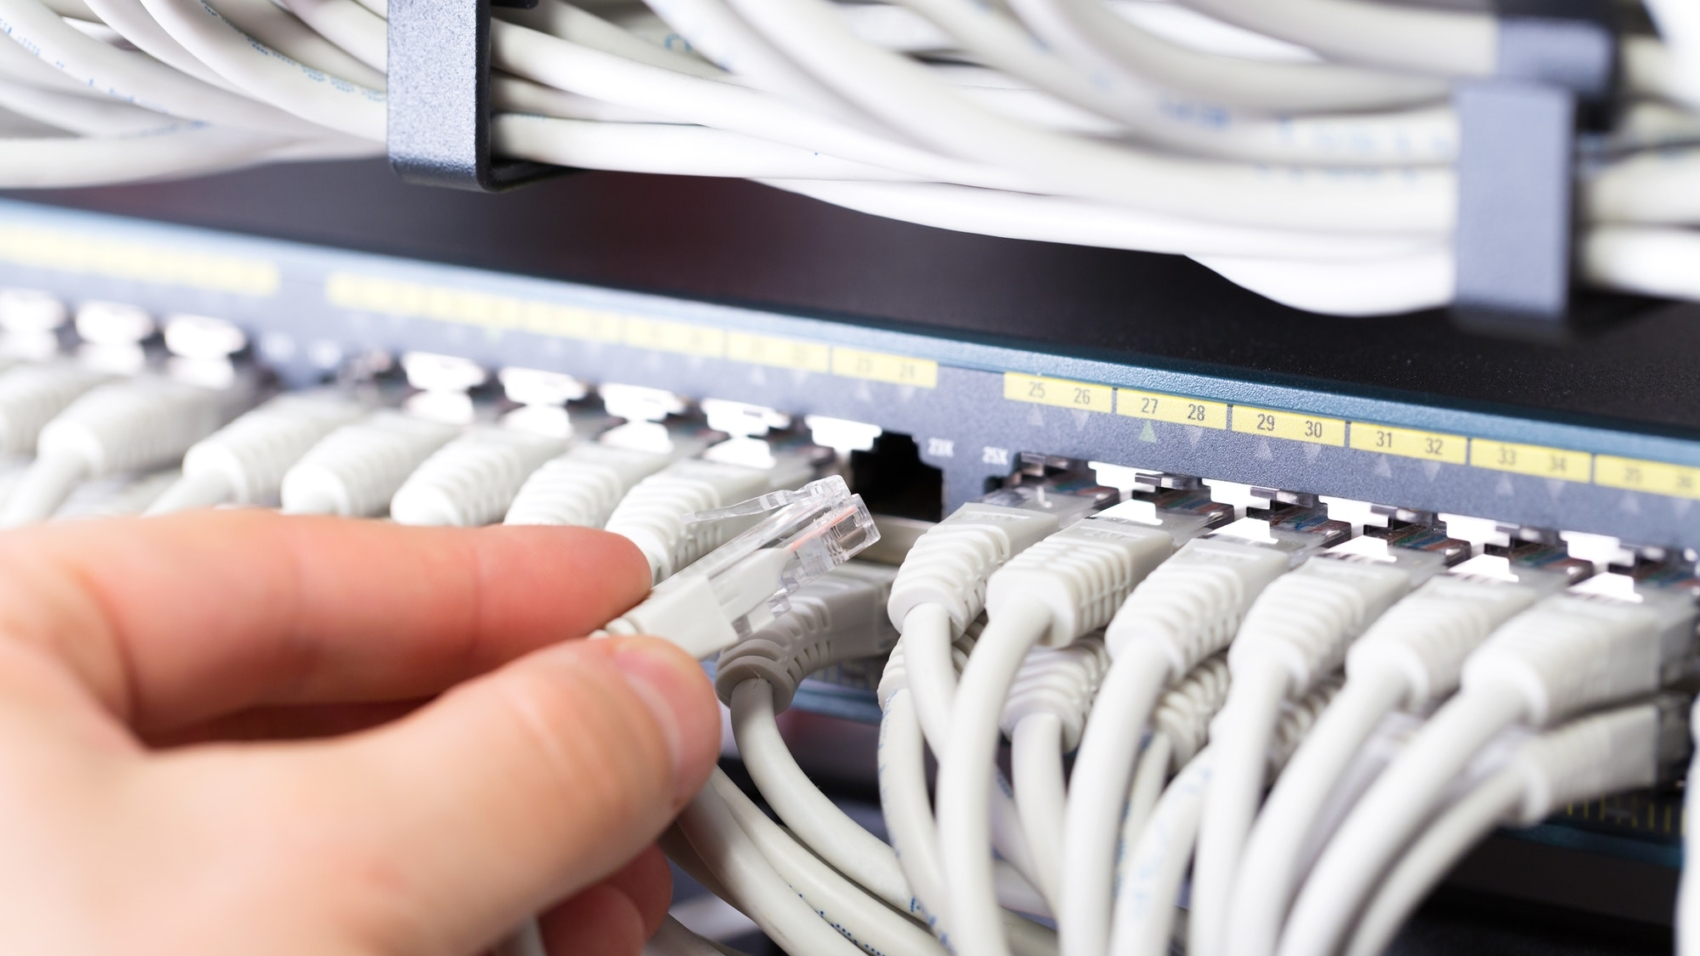 IT consultant connects a network cable into switch in datacenter by kjekol